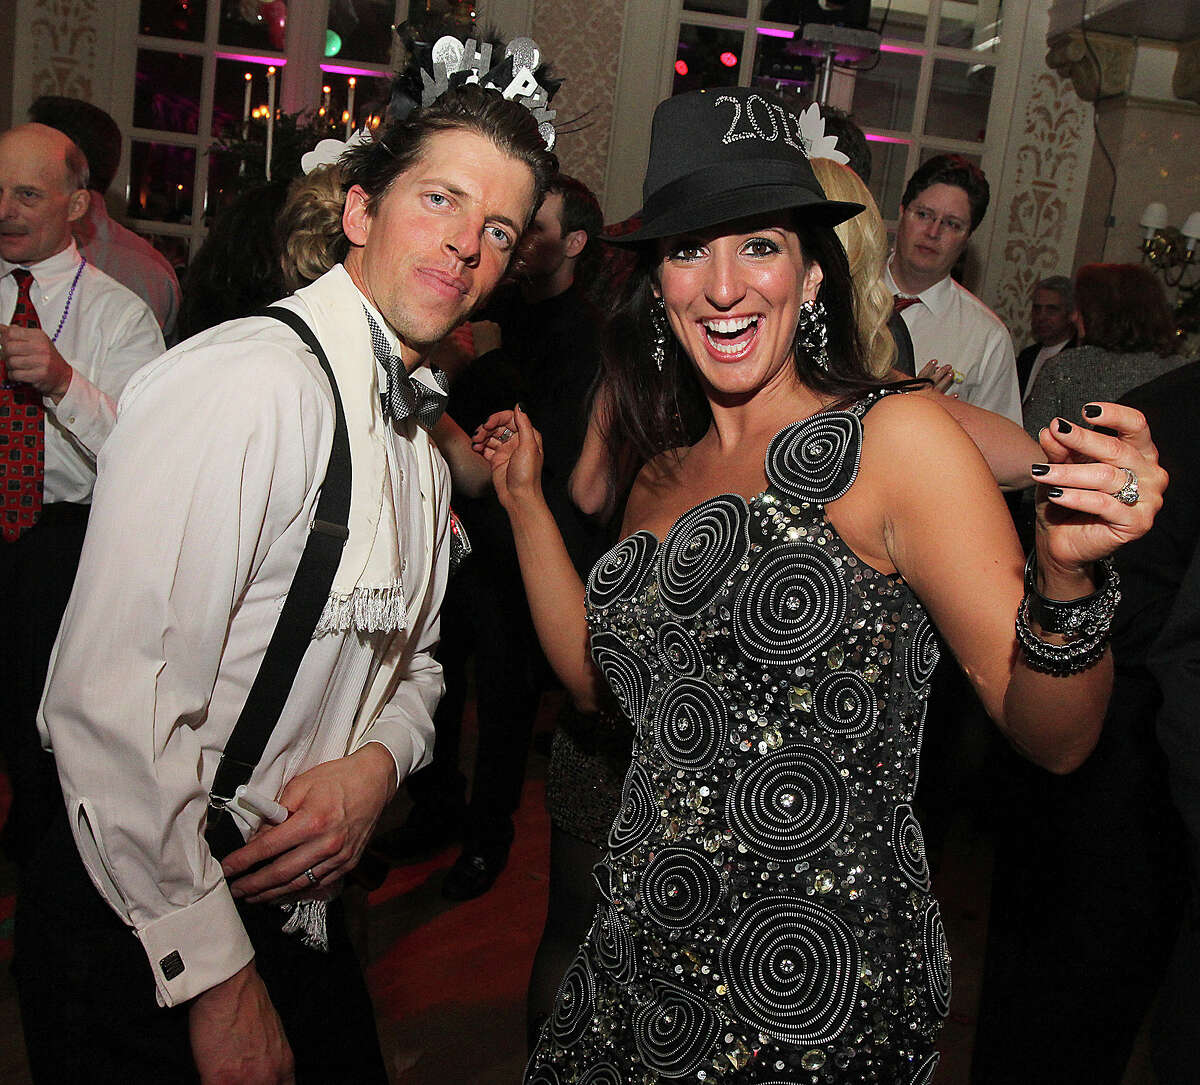 Troy, NY - December 31, 2012 - (Photo by Joe Putrock/Special to the Times Union) - Mark(left) and Tara(right) Burnham tear up the dance floor during the 8th Annual Last Night New Year?s Eve Gala to benefit St. Peter?s Hospital Foundation.